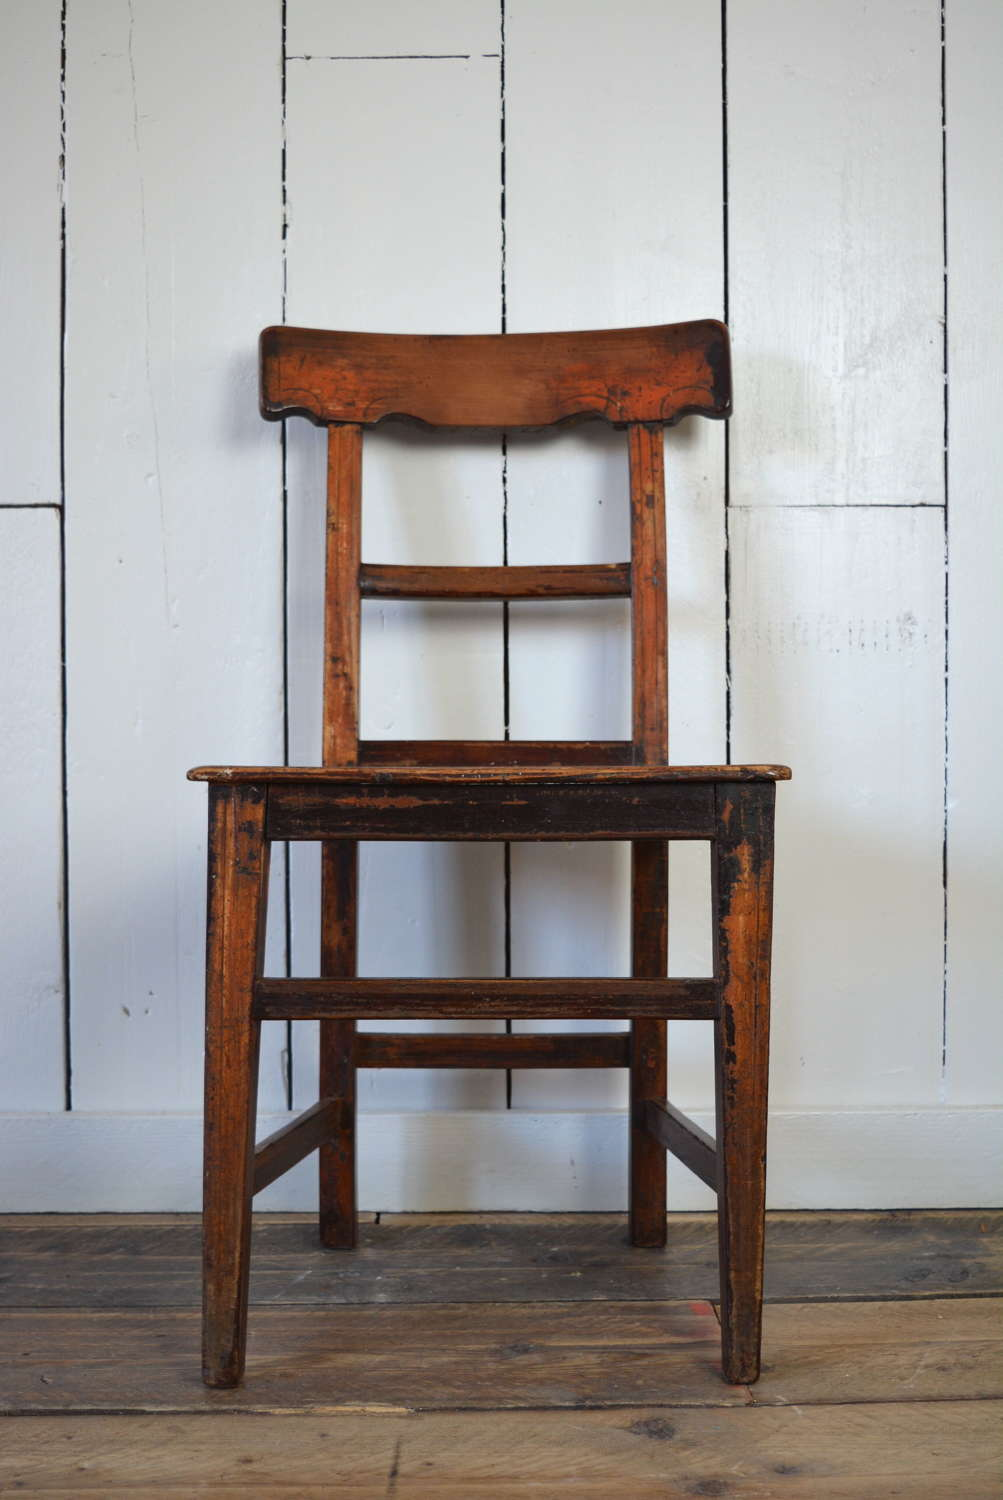 19TH CENTURY IRISH CARPENTERS CHAIR